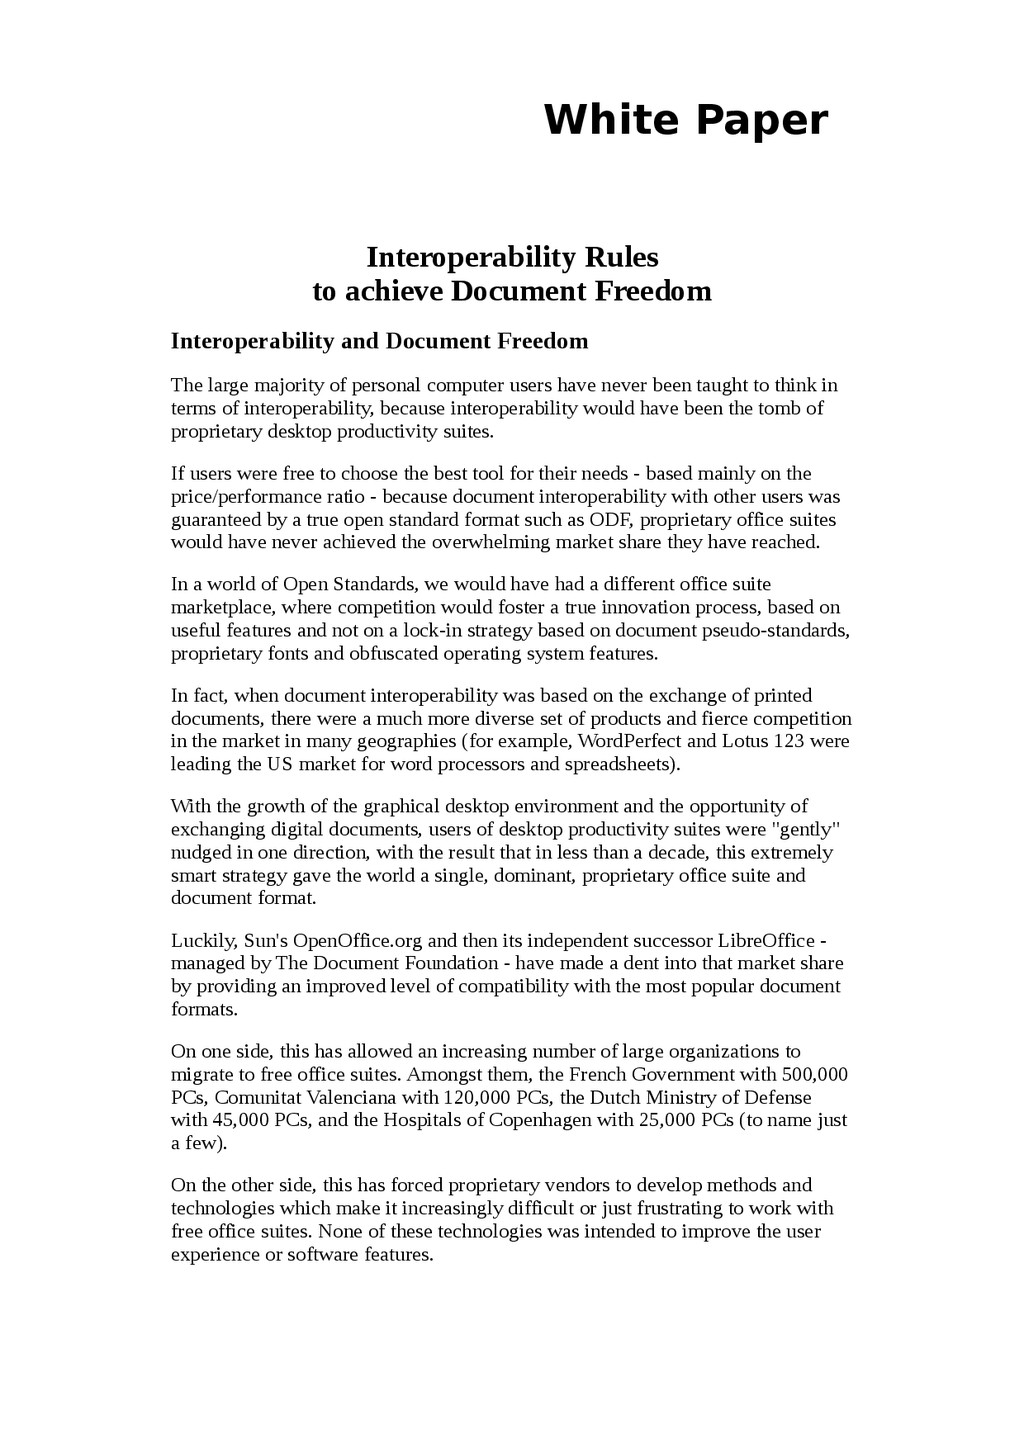 White Paper Interoperability Rules to achieve D...